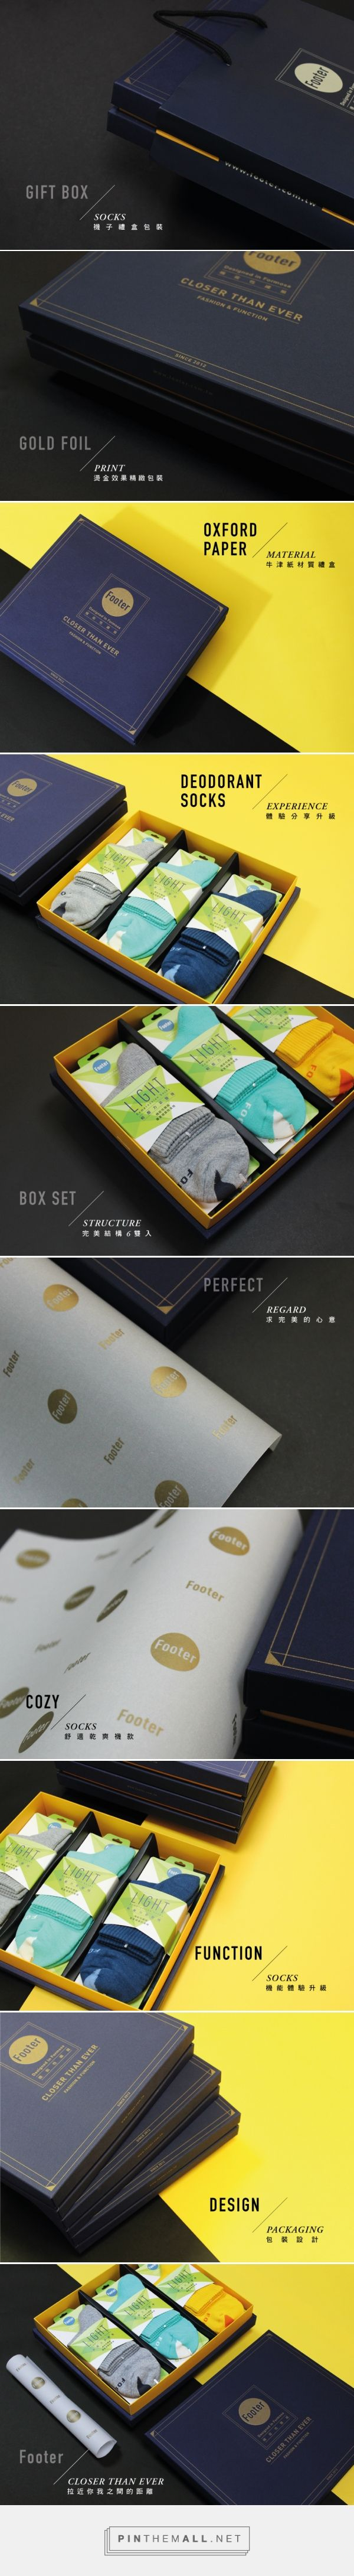 Footer | Fashion & Function Socks Gift Box | Formake Design #packaging